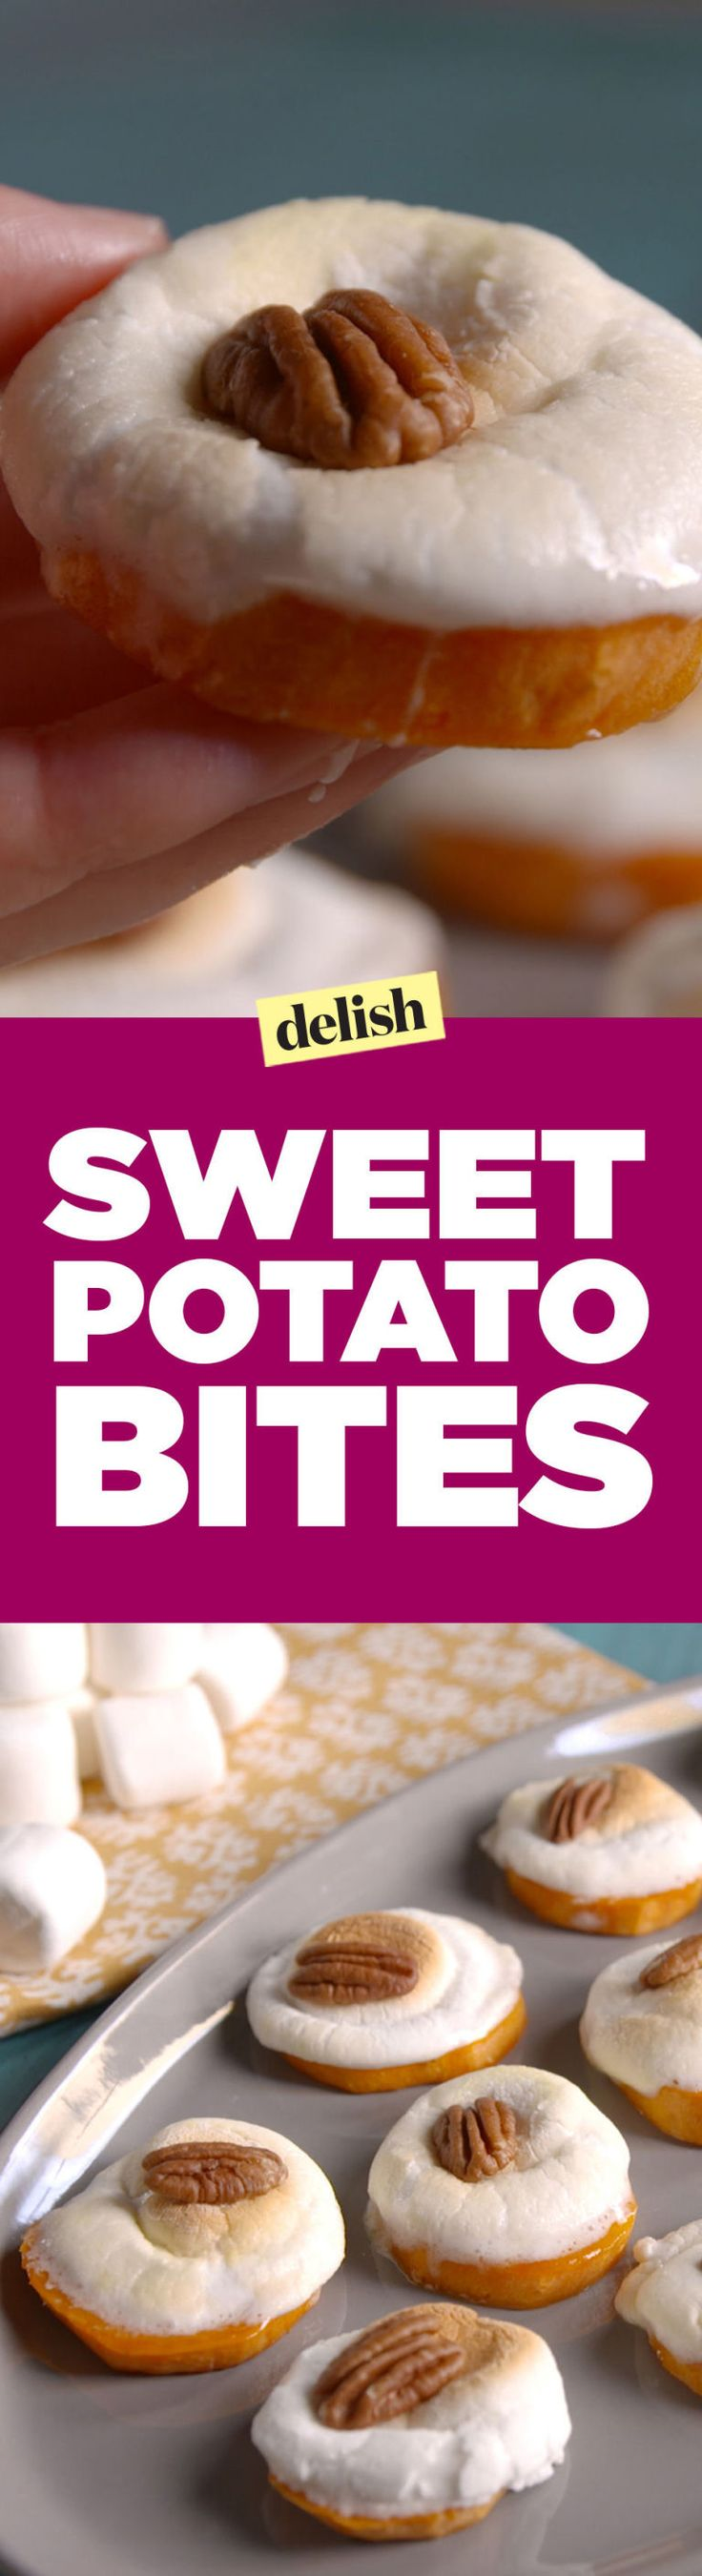 Sweet Potato Bites Are The Cutest, Easiest Thanksgiving Appetizers - Delish.com